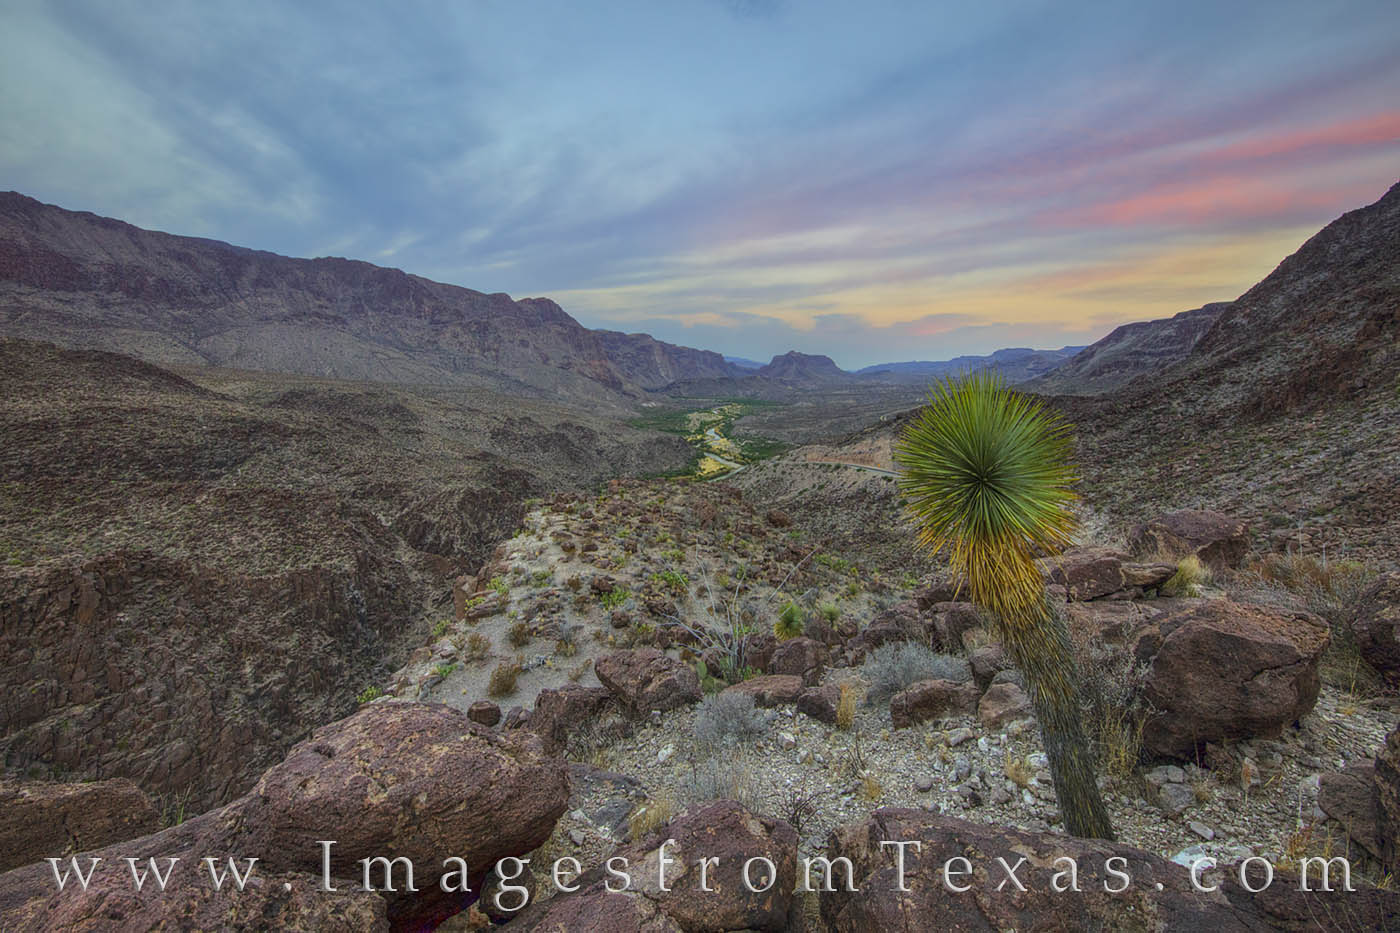 ig Hill, Big Bend Ranch, FM 170, texas, state parks, landscapes, morning, west, west texas, presidio, dom rock, rio grande, texas border, photo